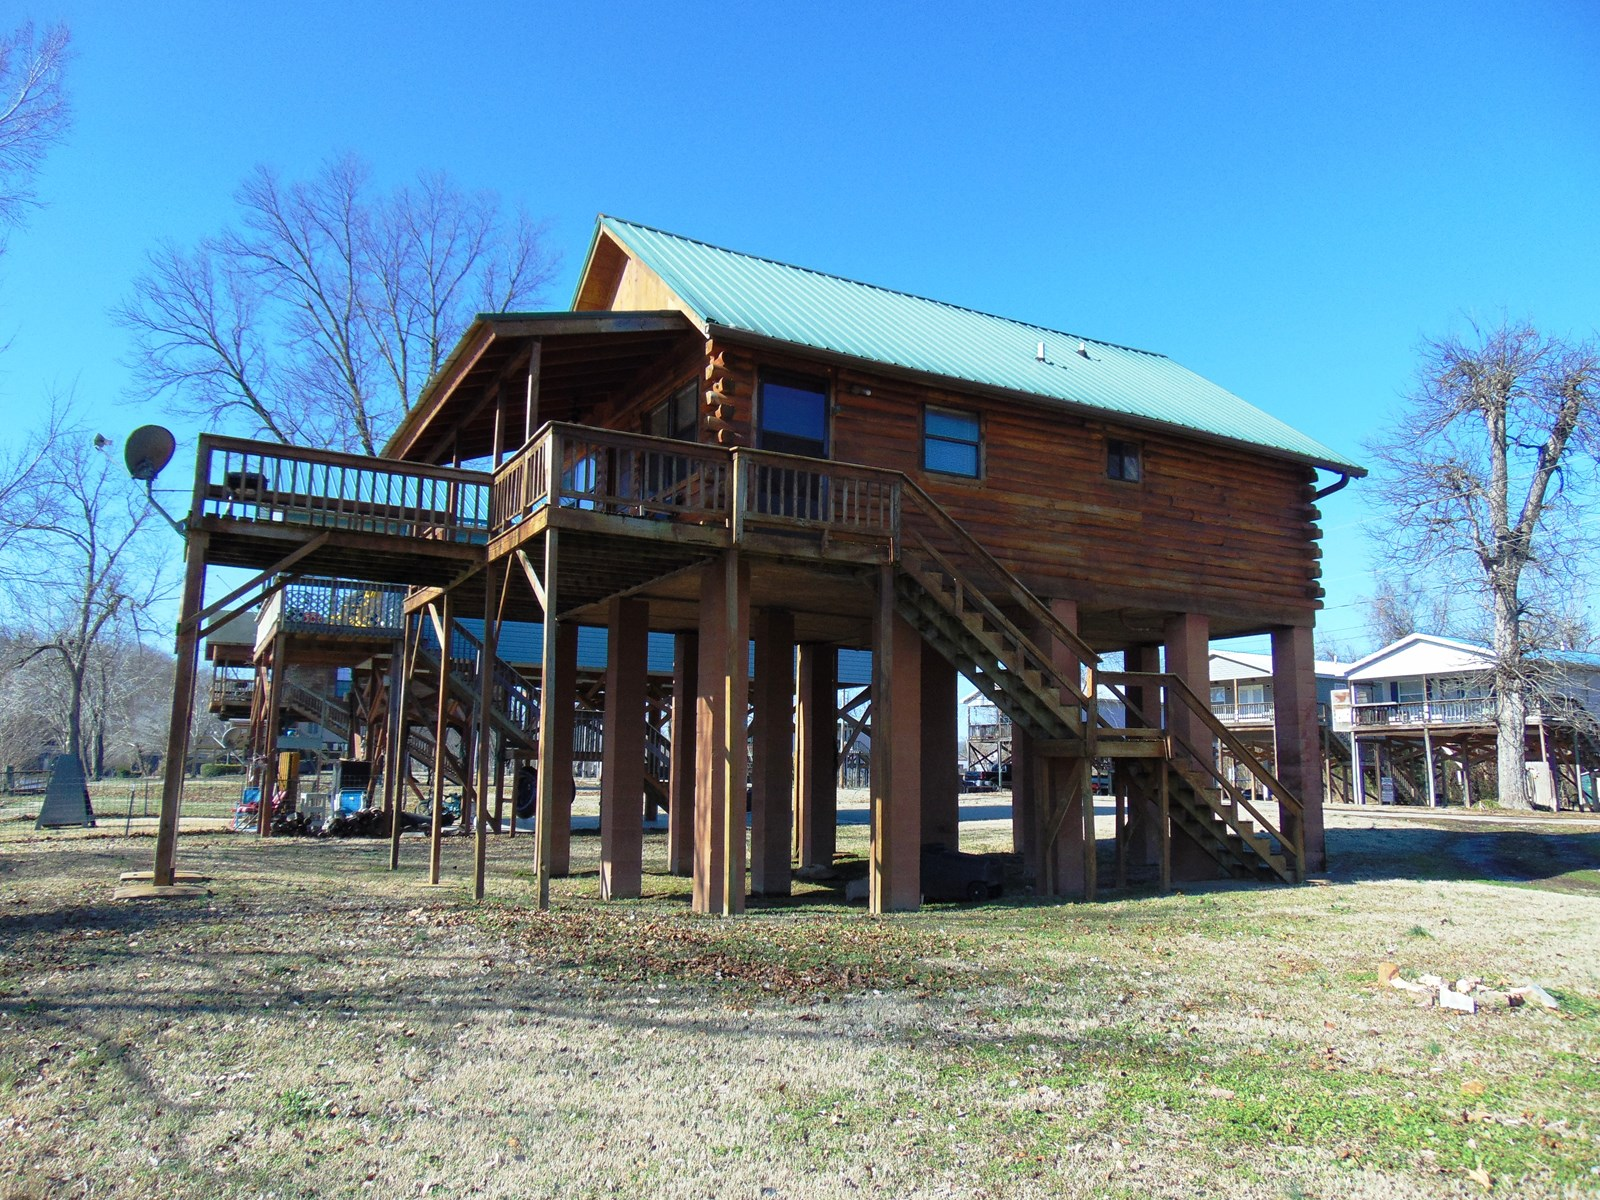 3 Spring River Cabins for sale in Arkansas